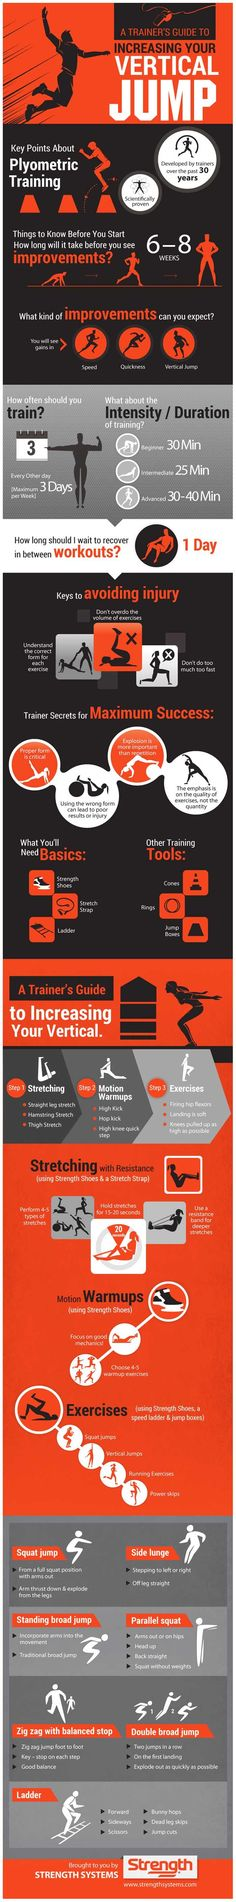 Vertical Jump: A Trainer's Guide to Increasing Your Vertical Leap  [by Strength Systems -- via #tipsographic]. More at tipsographic.com